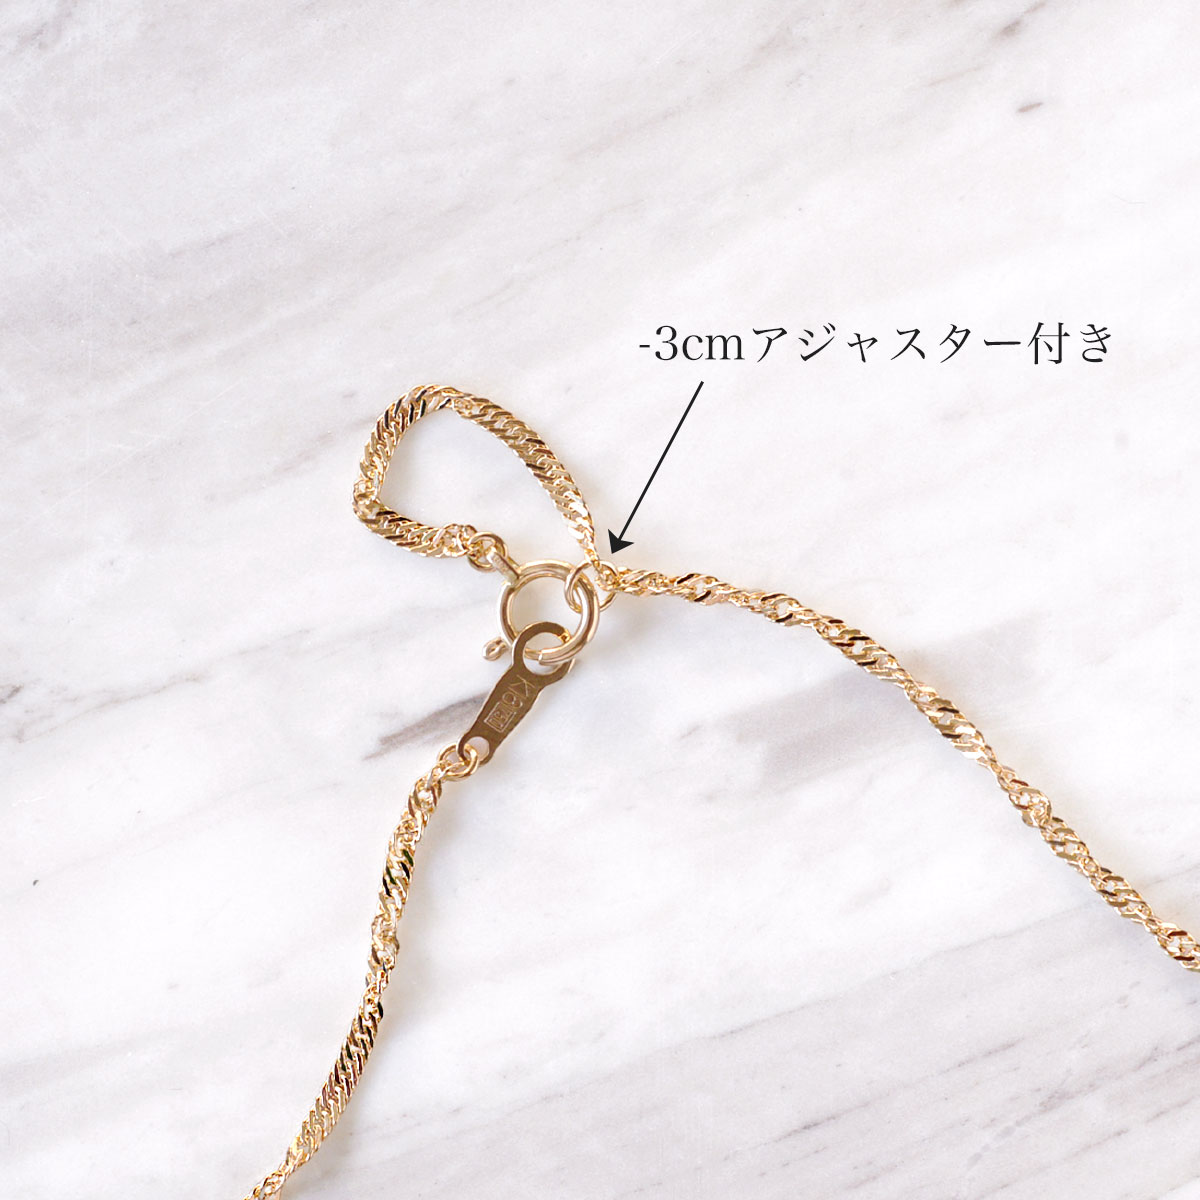 K18 イエローゴールド スクリュー 幅1.4mm チェーン 50cm / プレゼント ギフト gold necklace ach1612ae